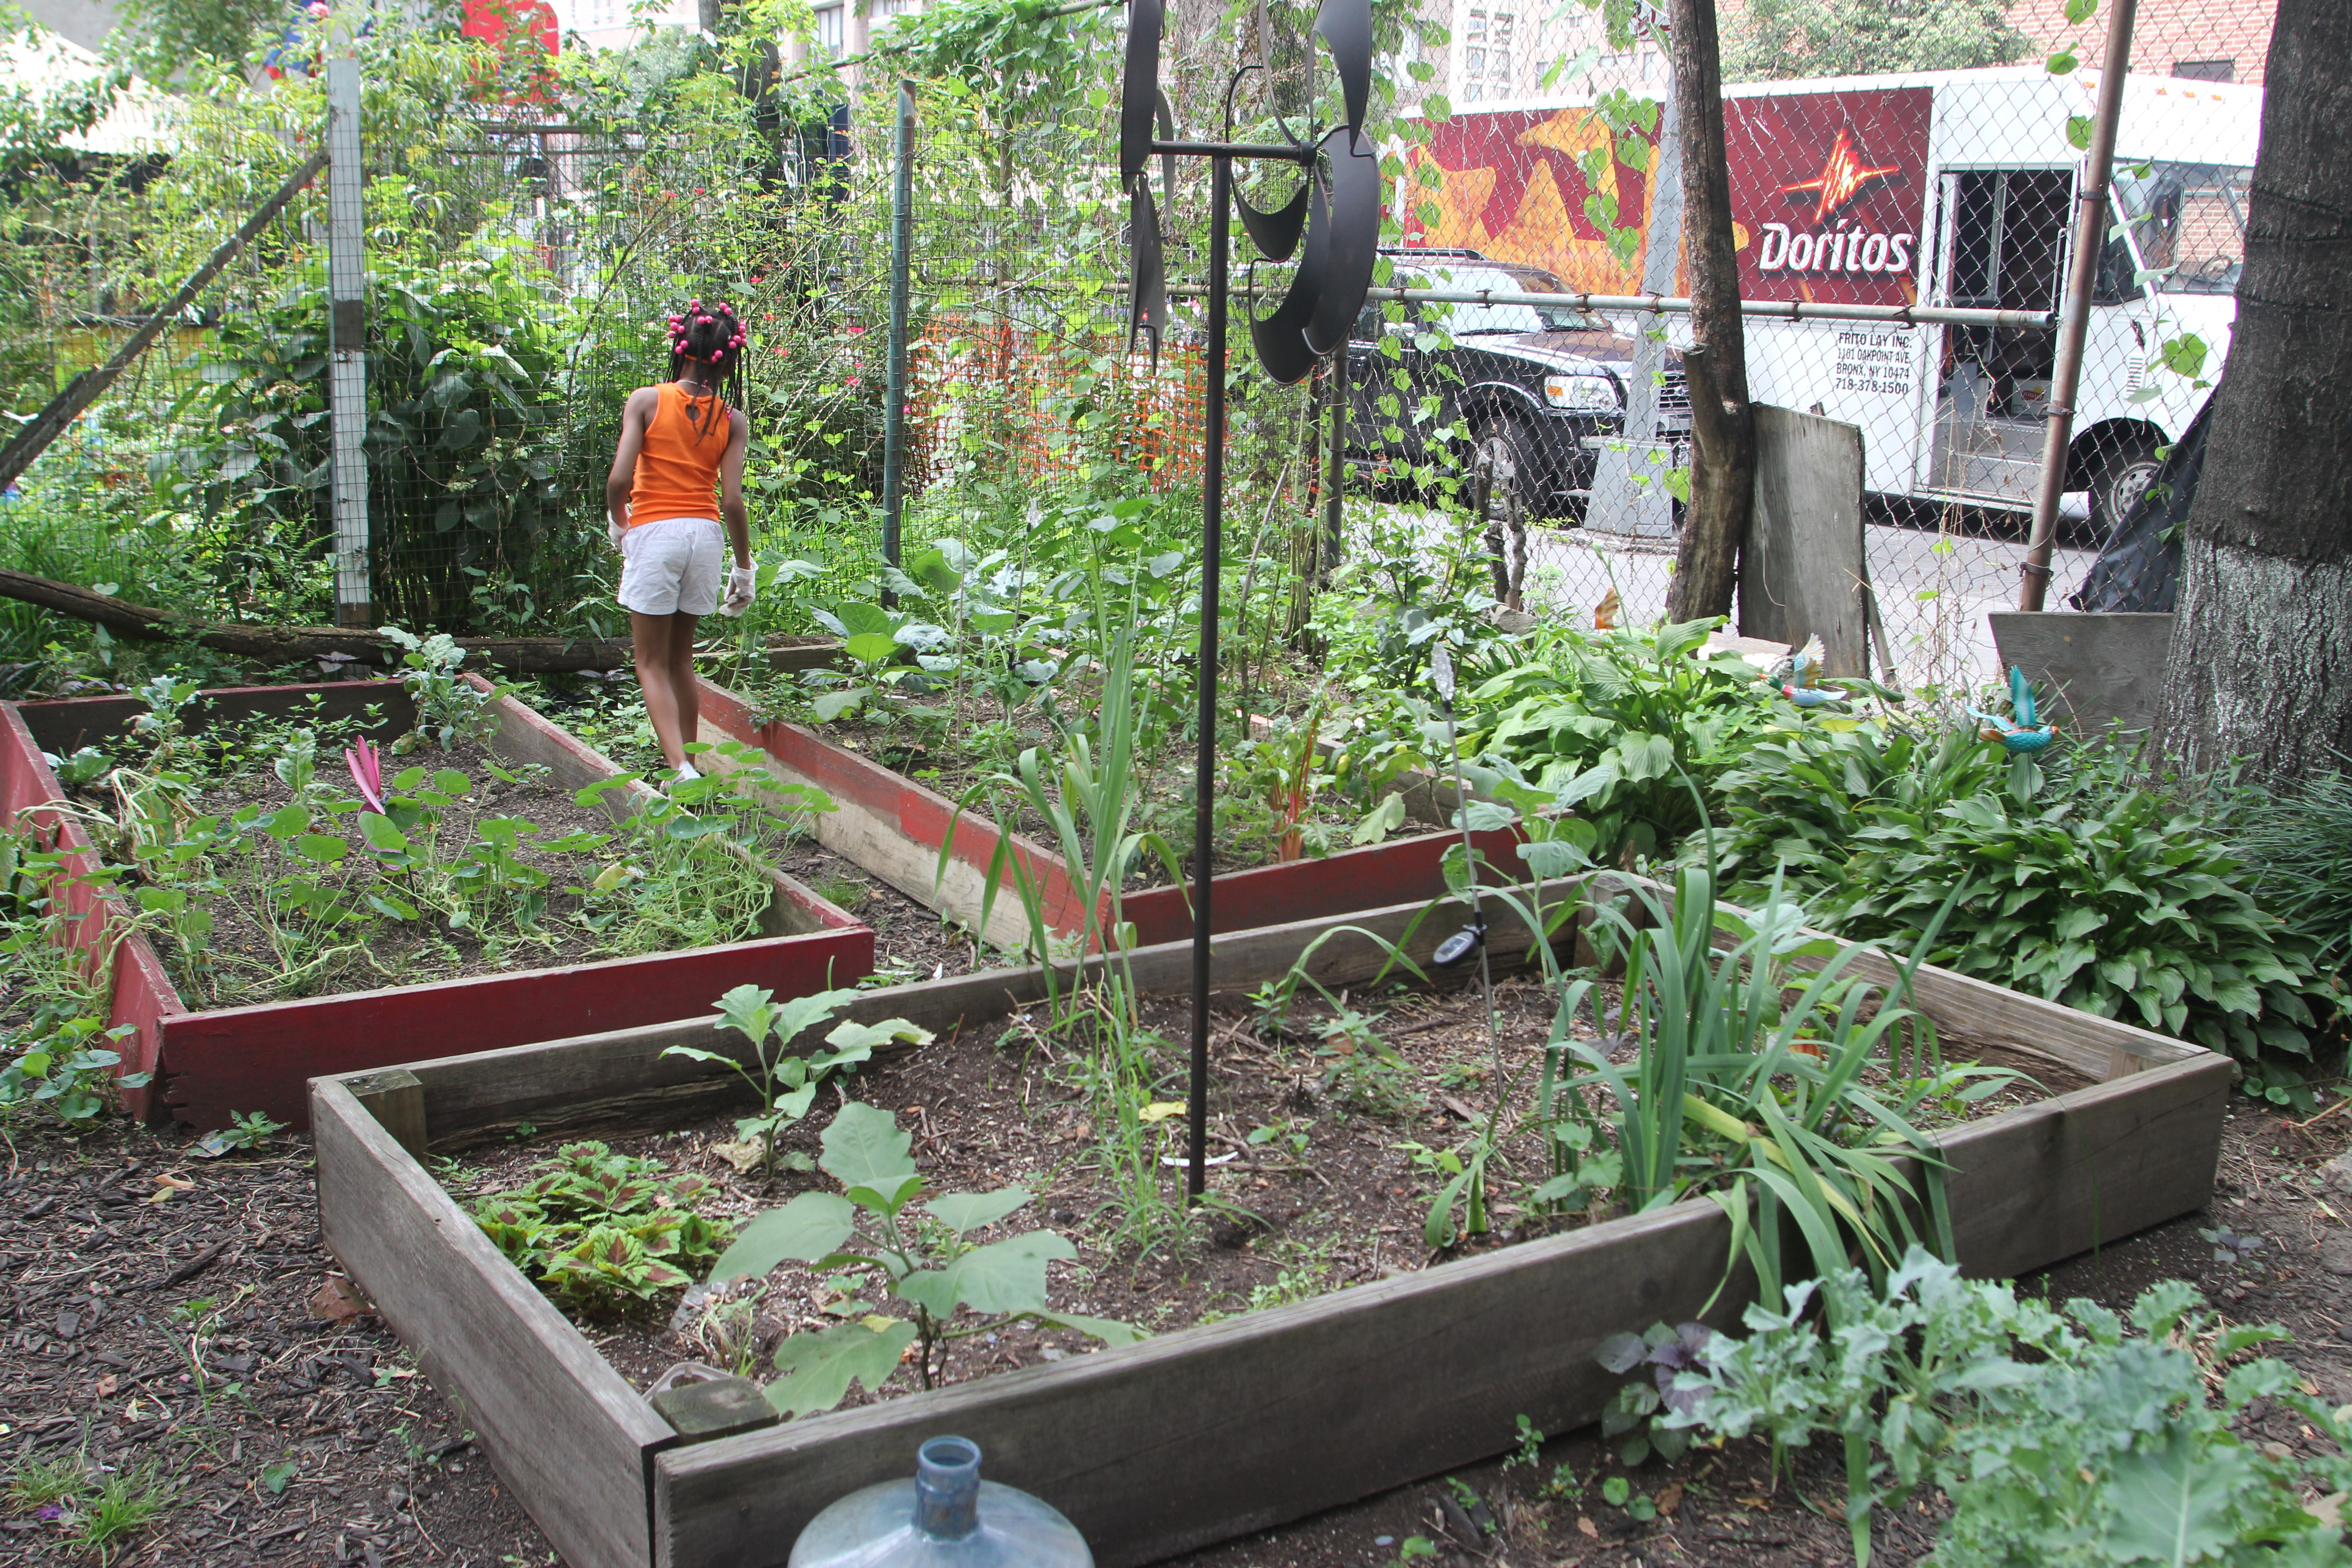 In East Harlem, Community Gardens Provide More Than Food